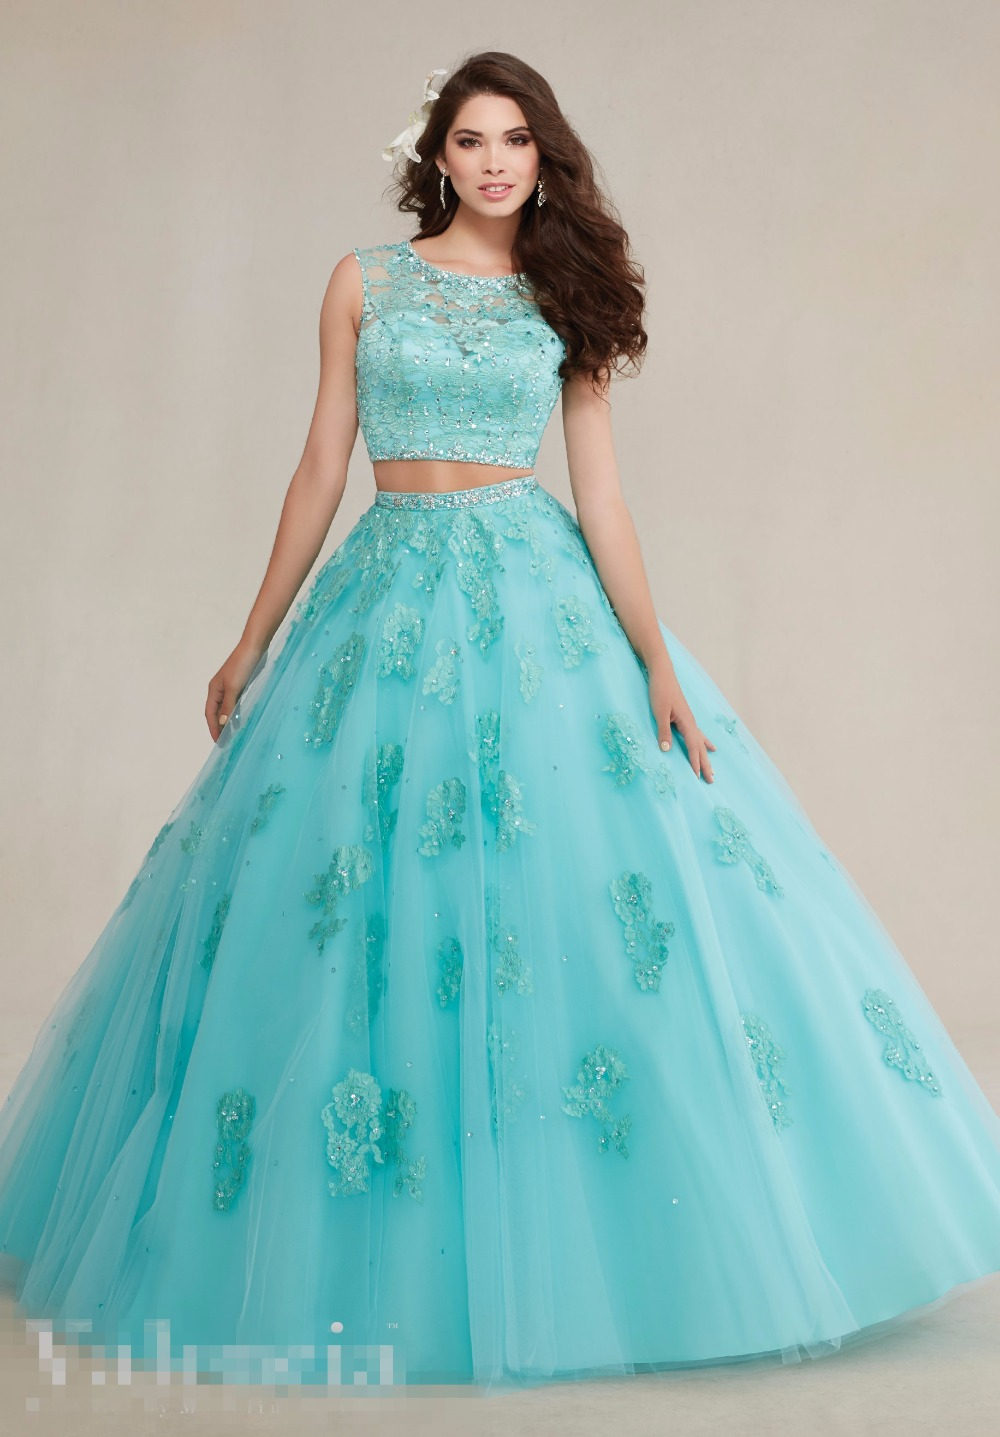 f0a9fc403f2 Mint Ball Gown Prom Two Pieces Quinceanera Dresses 2 Lace Tulle Beaded  Sleeveless Sweet